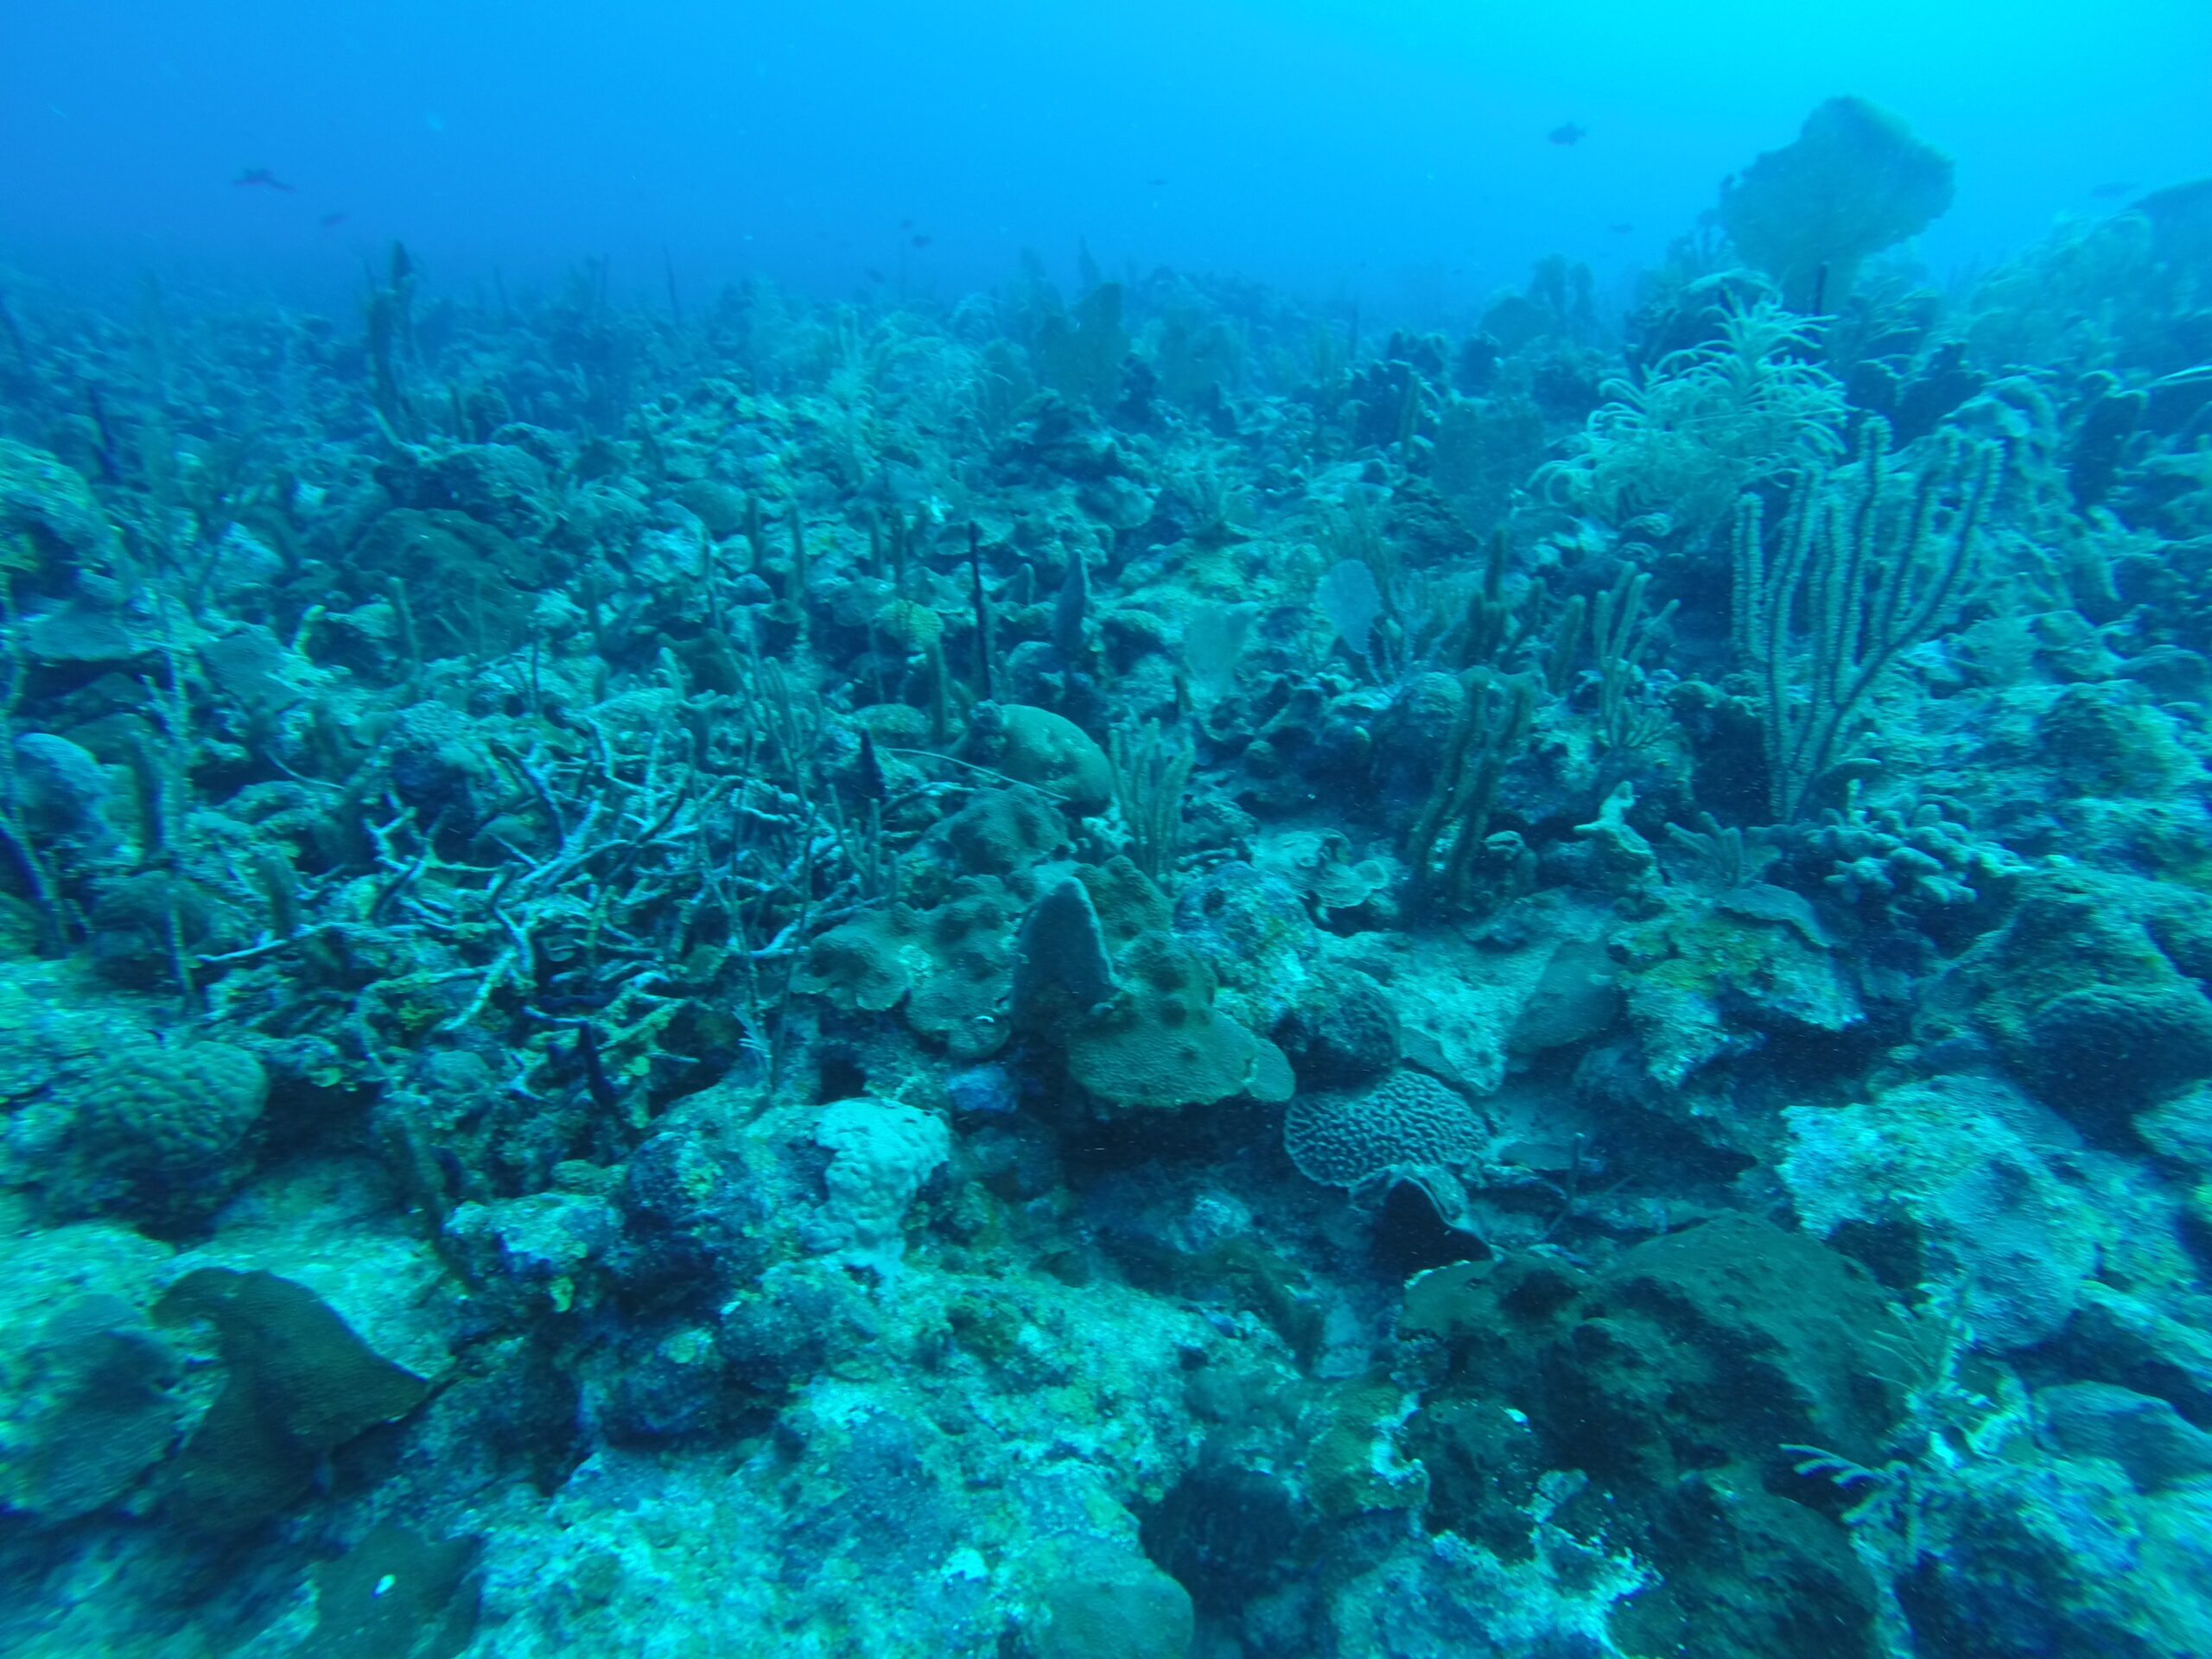 Soundscapes coral reef